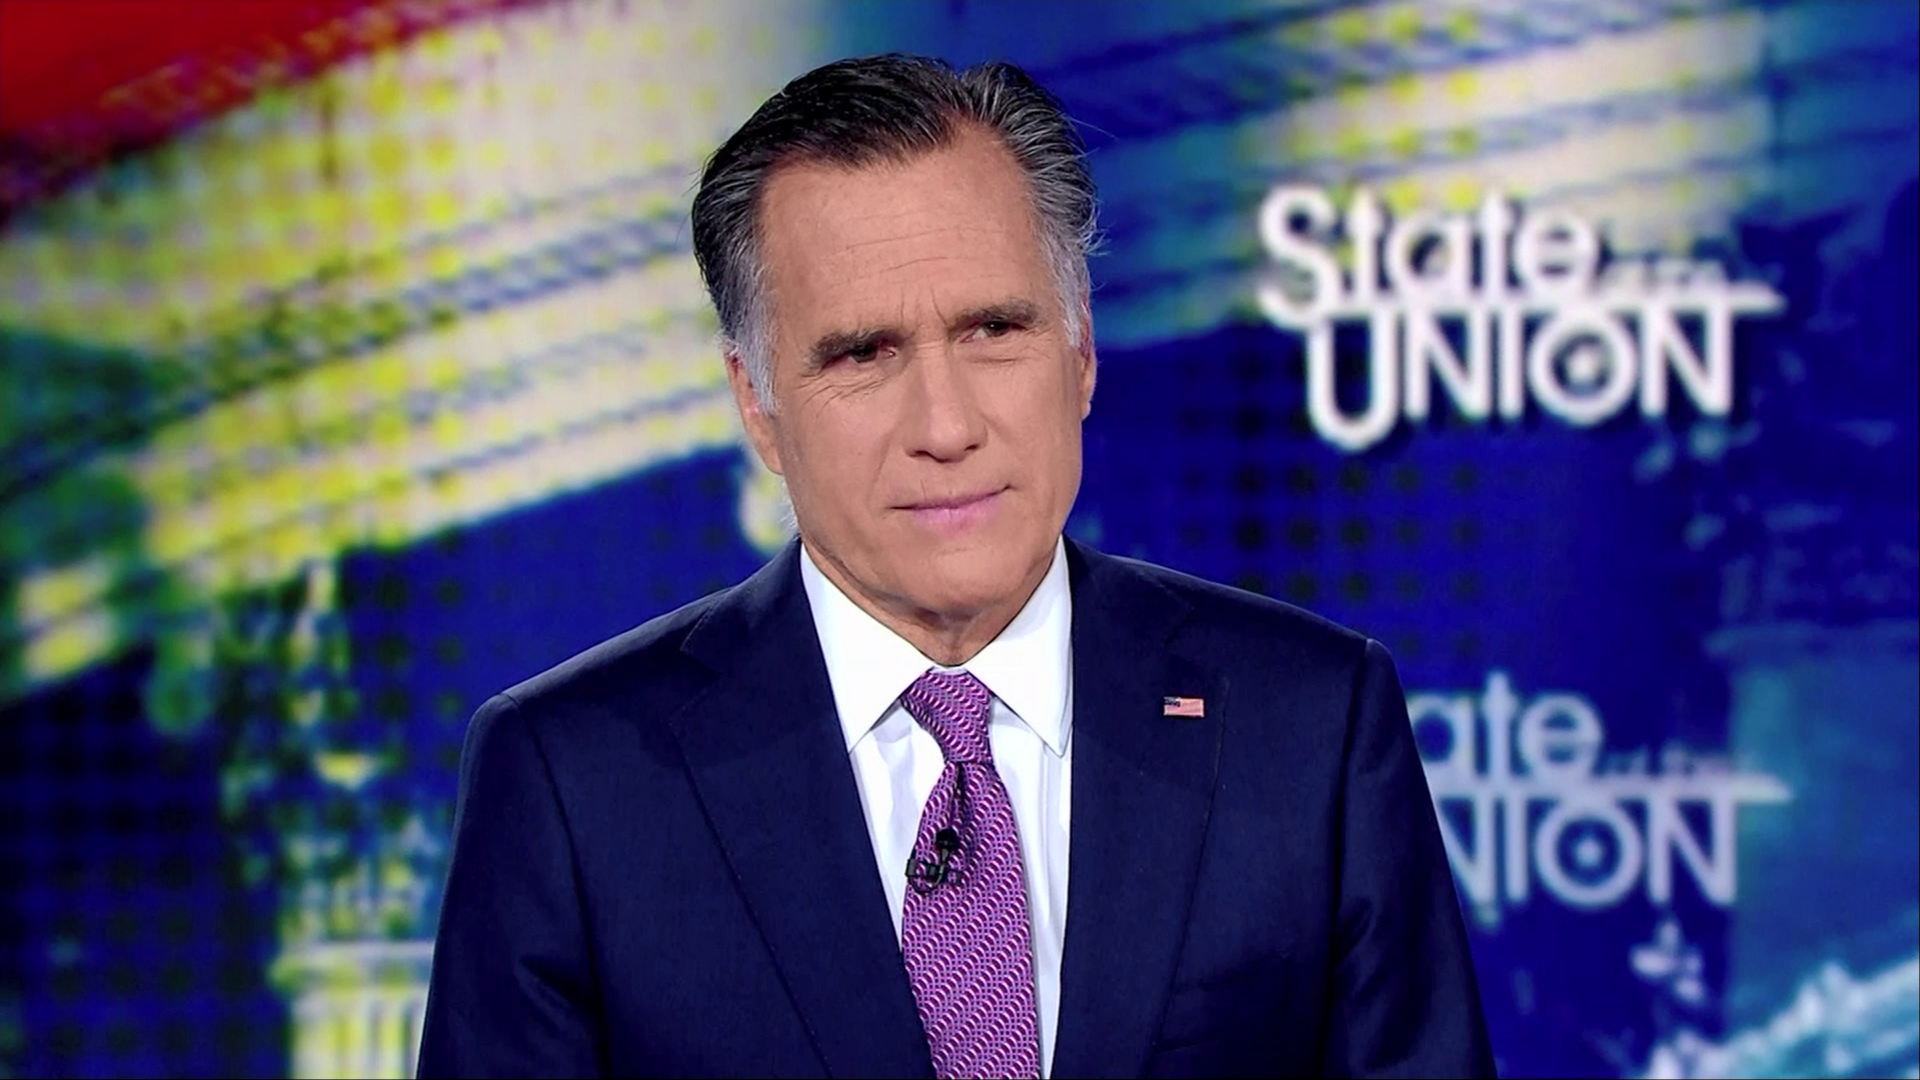 ROMNEY ON CNN'S STATE OF THE UNION